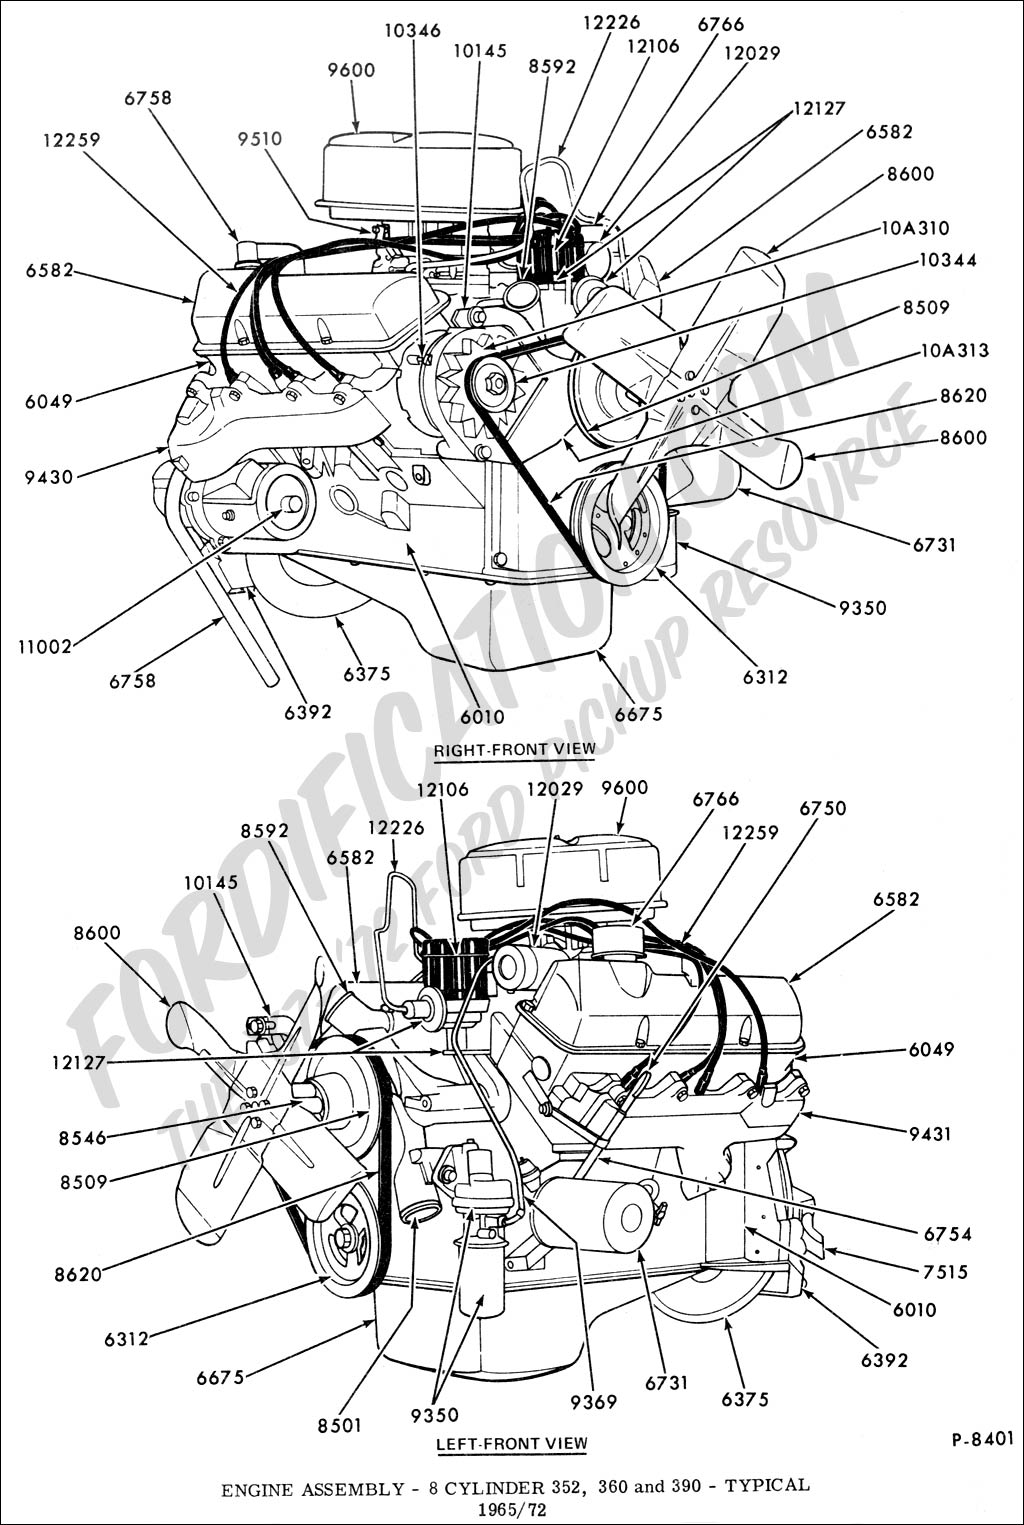 Car Wiring Diagram Mercury Cougar Diagram